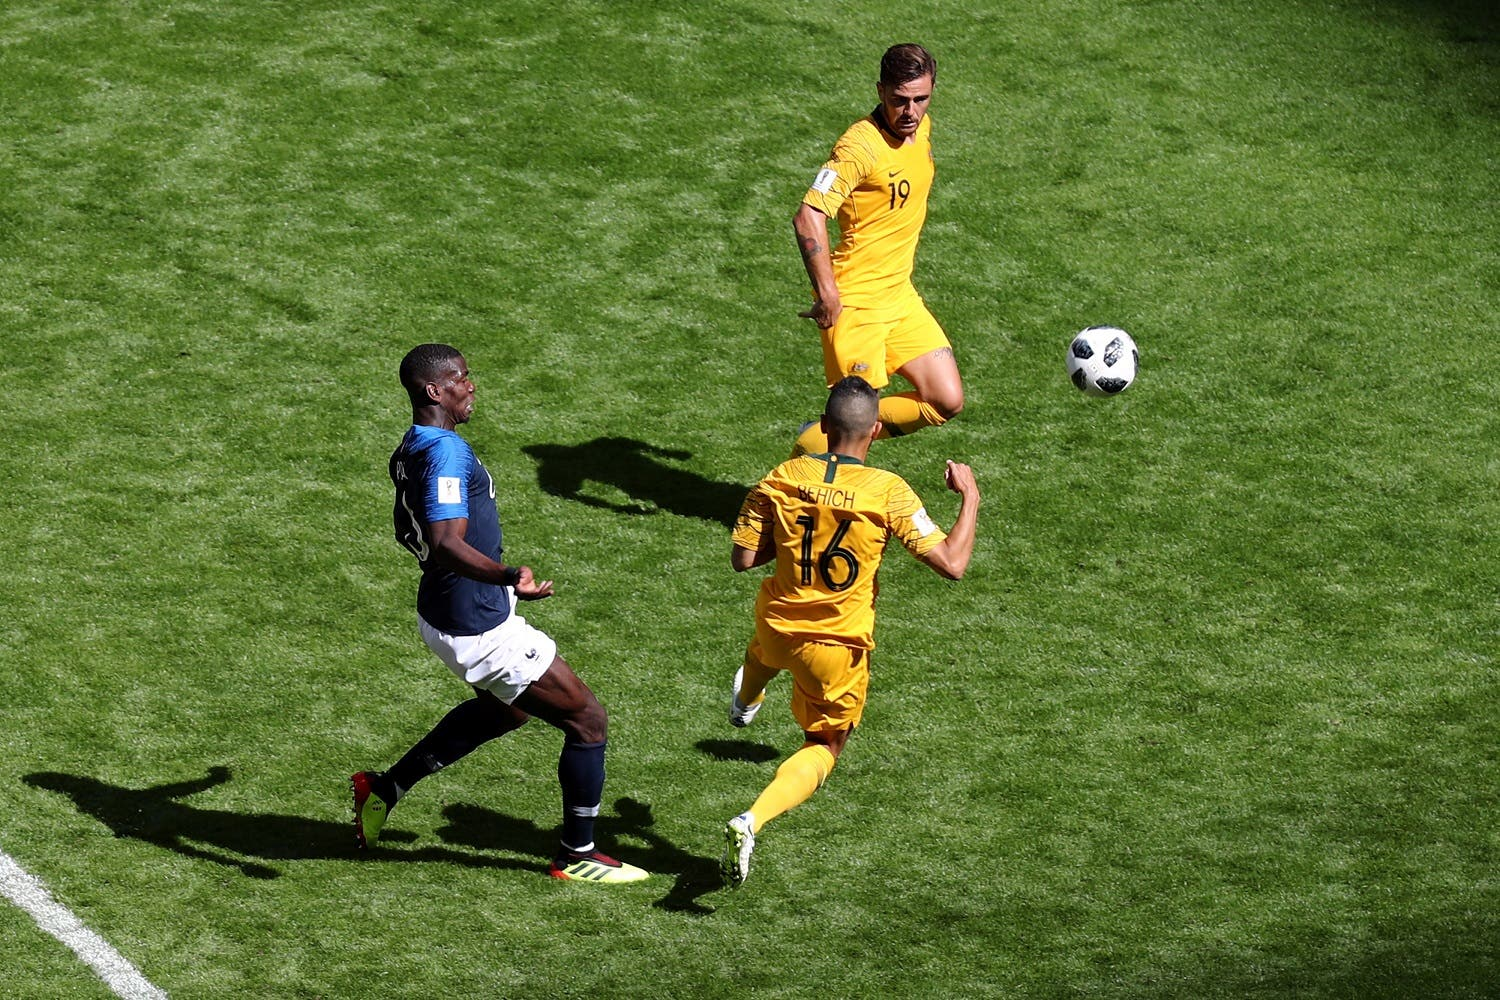 France's Paul Pogba scores their second goal against Australia in their opening World Cup Group C game. (Reuters)